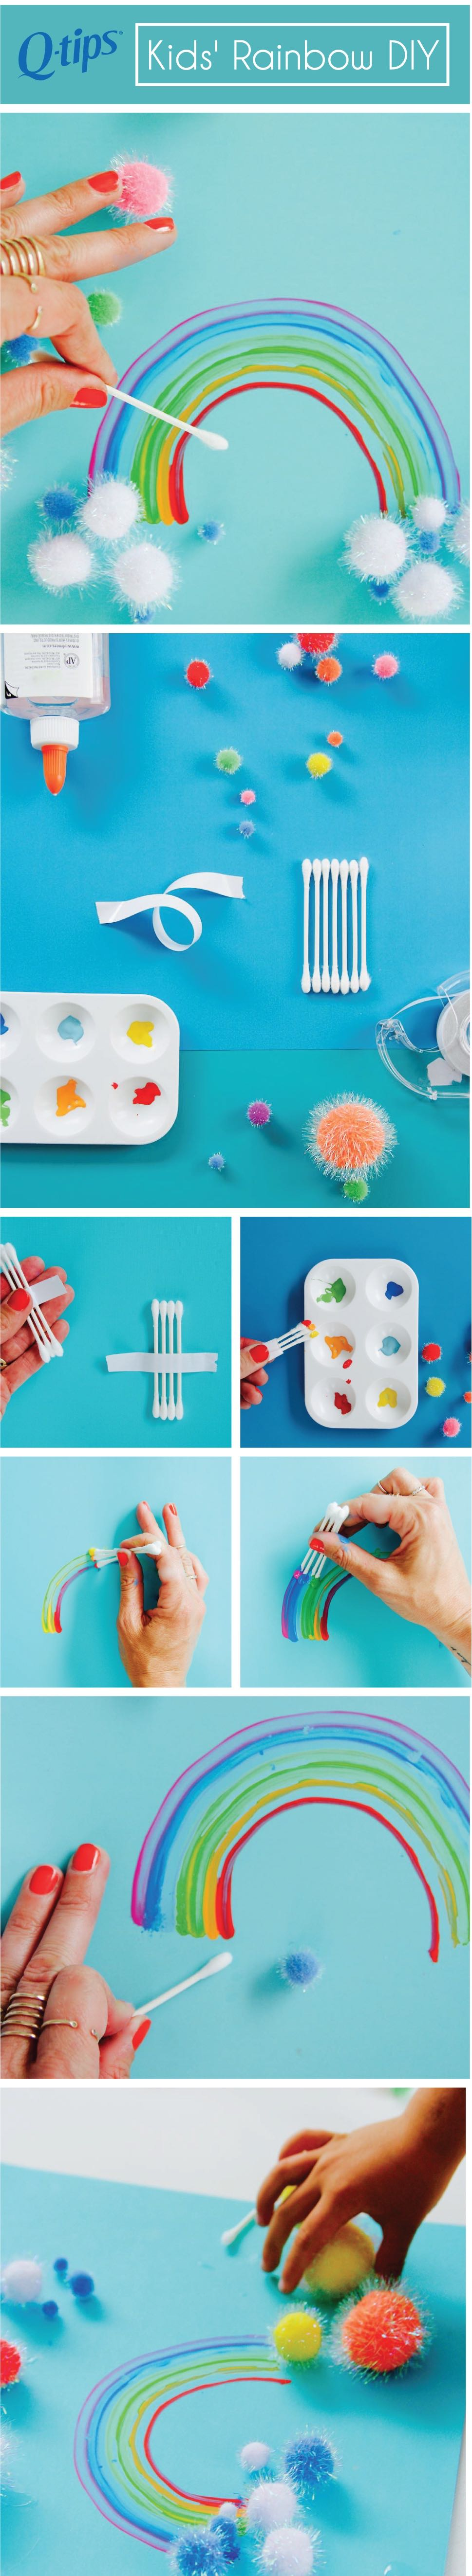 pinterest how to paint a rainbow with q tips